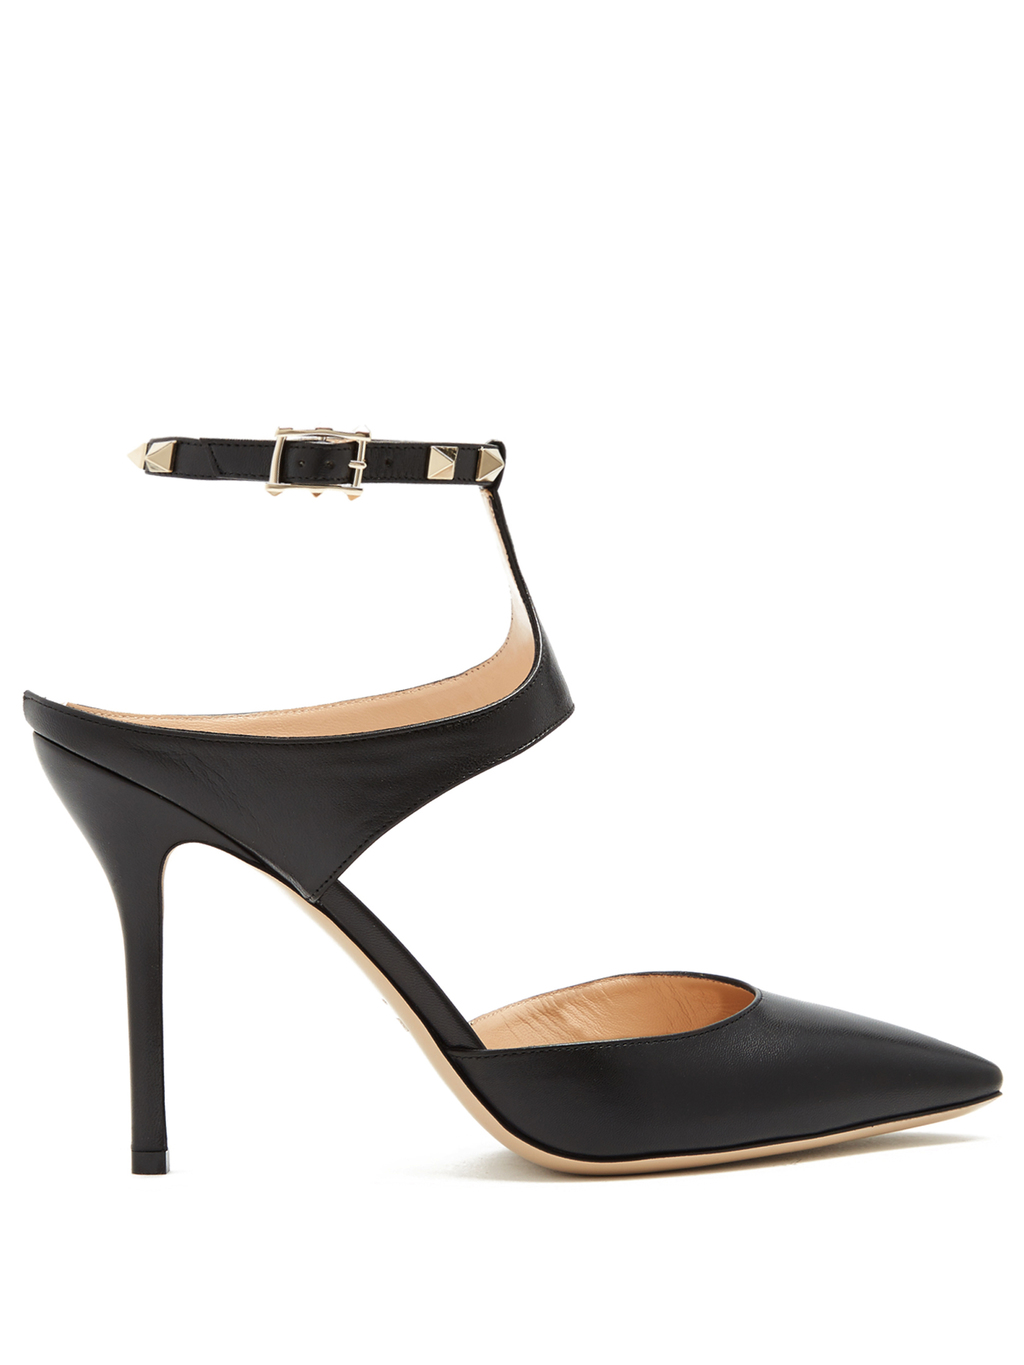 Rockstud Point Toe Leather Pumps - predominant colour: black; occasions: evening, occasion, creative work; material: leather; heel height: high; embellishment: studs; ankle detail: ankle strap; heel: stiletto; toe: pointed toe; style: courts; finish: plain; pattern: plain; wardrobe: highlight; season: s/s 2017